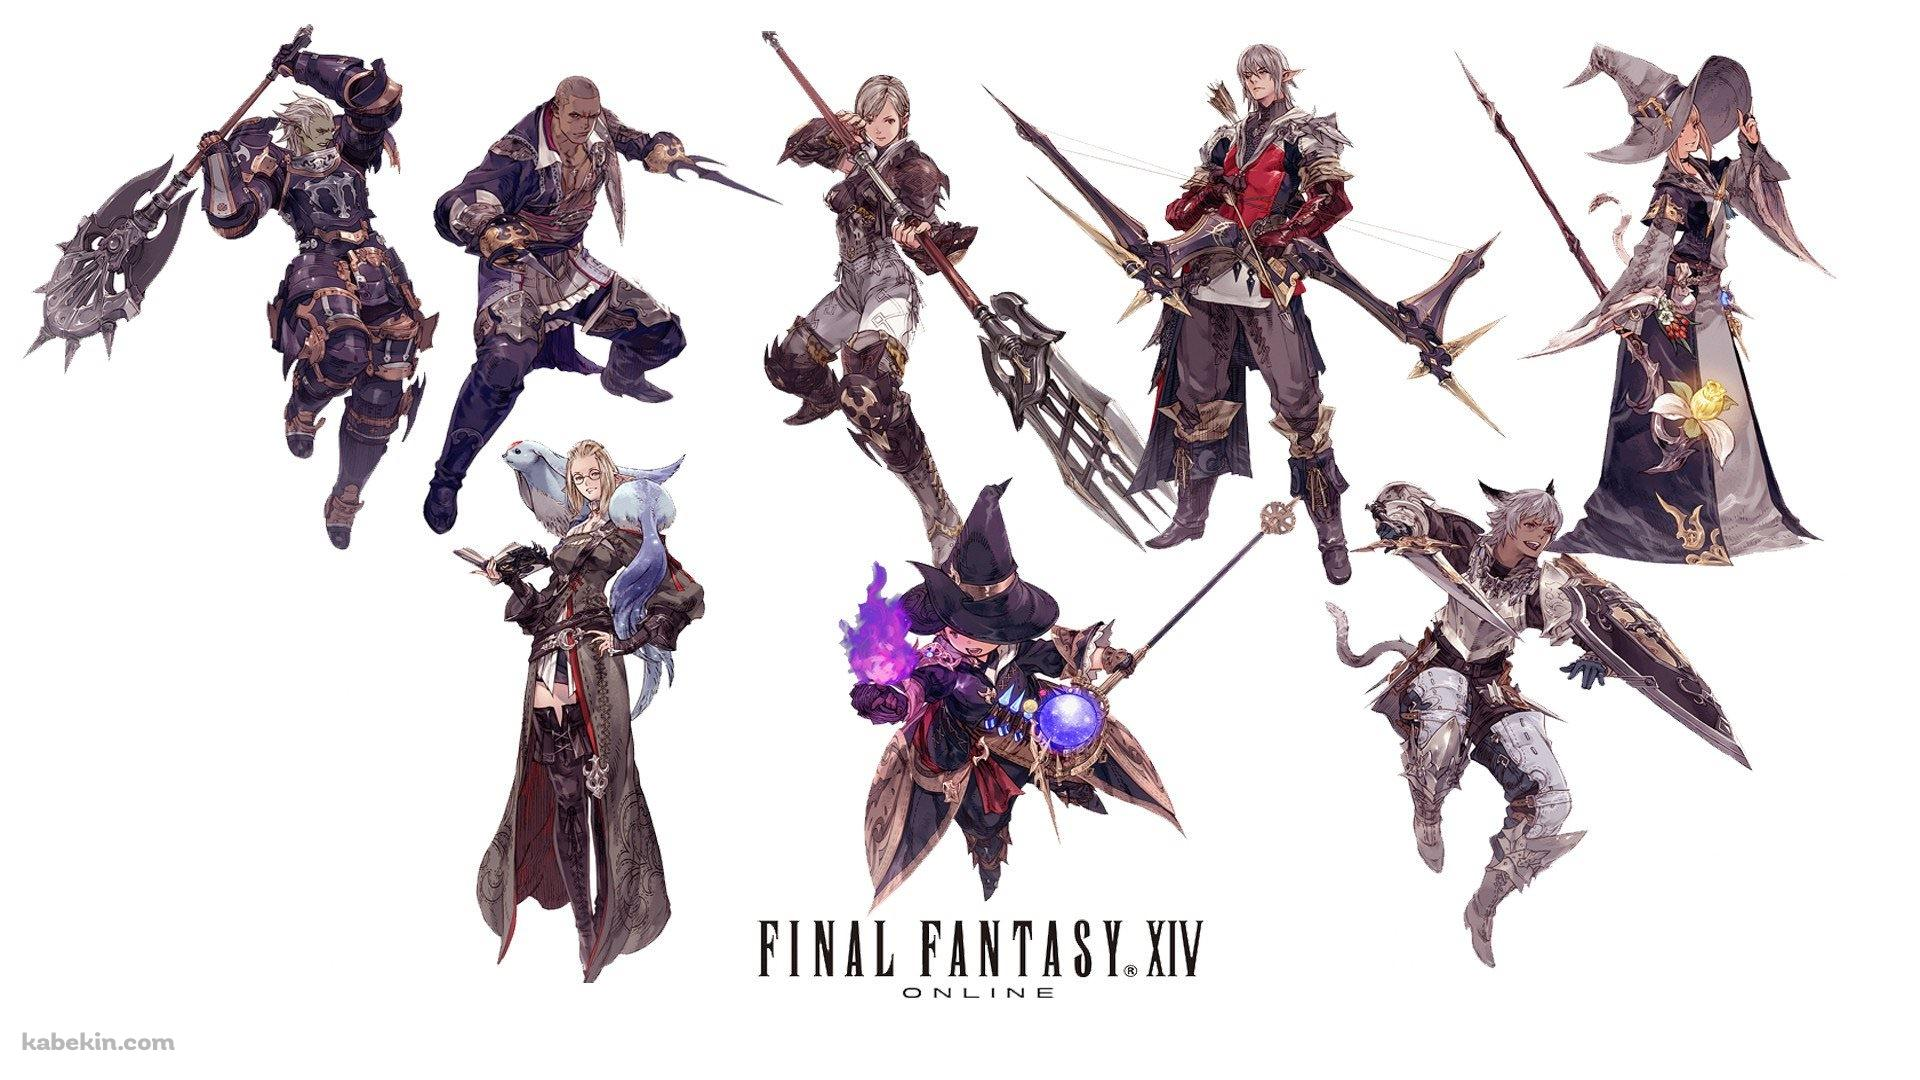 Ff14 1920 x 1080 pc voltagebd Image collections